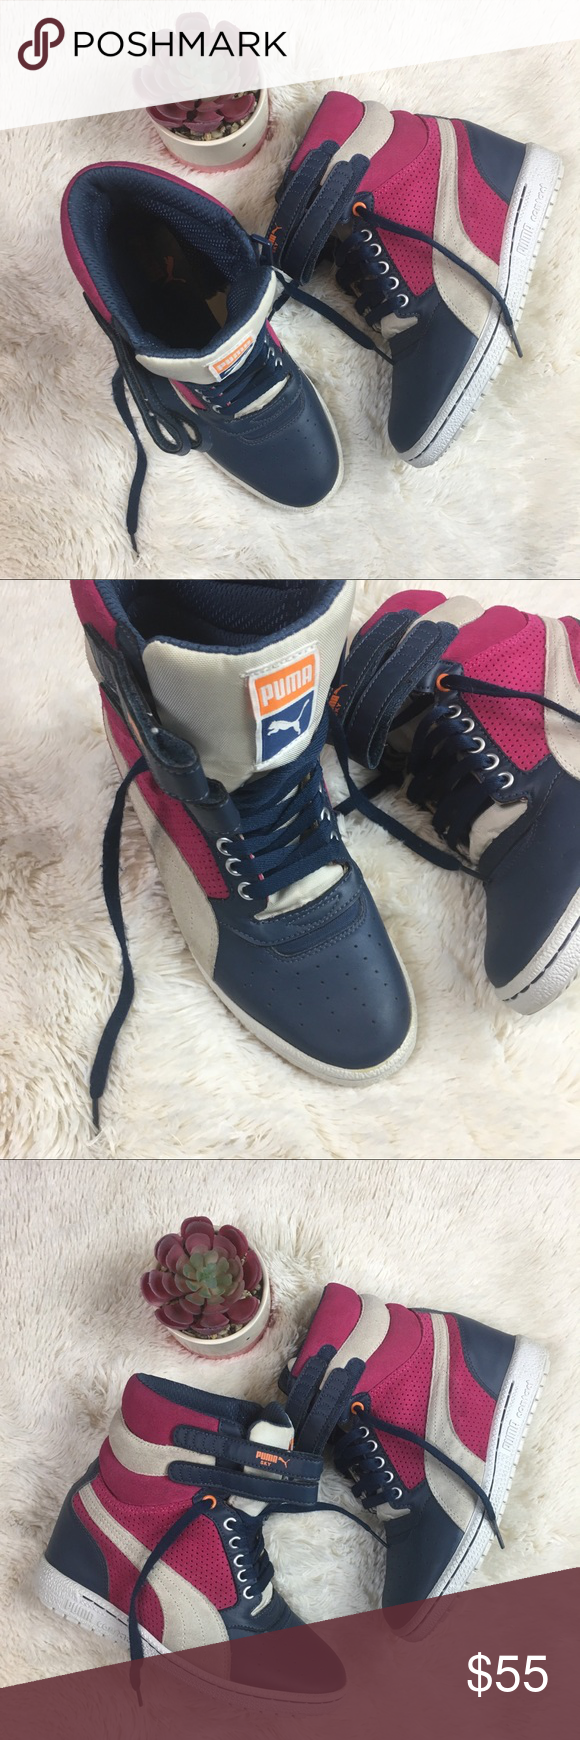 4a0c7b61f7dd Puma Sky High Top Wedge Sneakers 7 Gorgeous preowned hightop Sneakers.  Perfect year round.